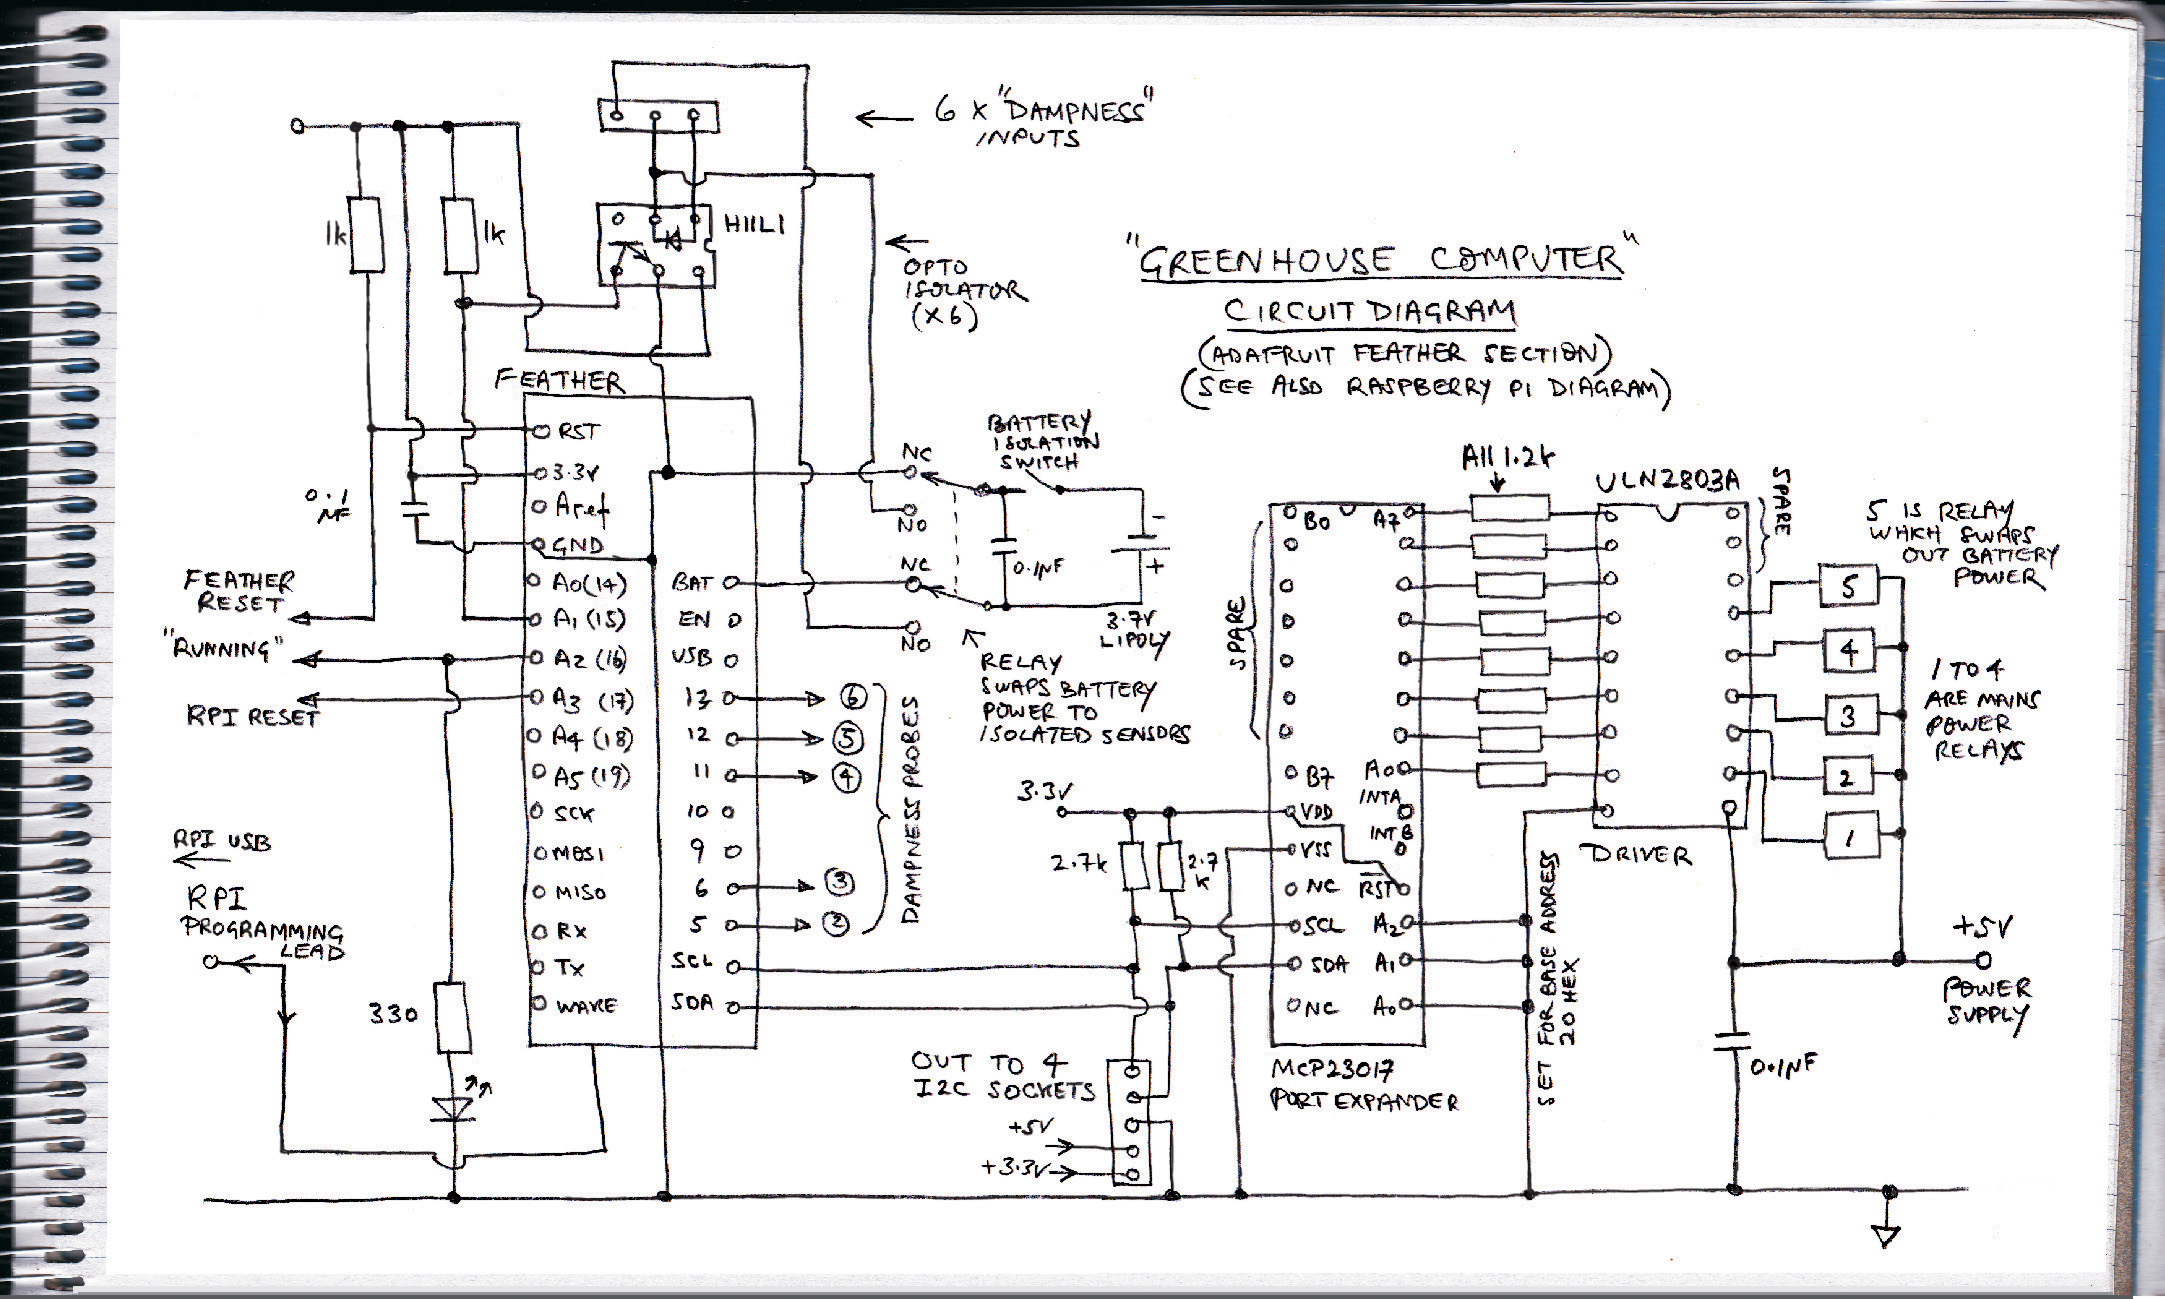 Greenhouse controller circuit diagram